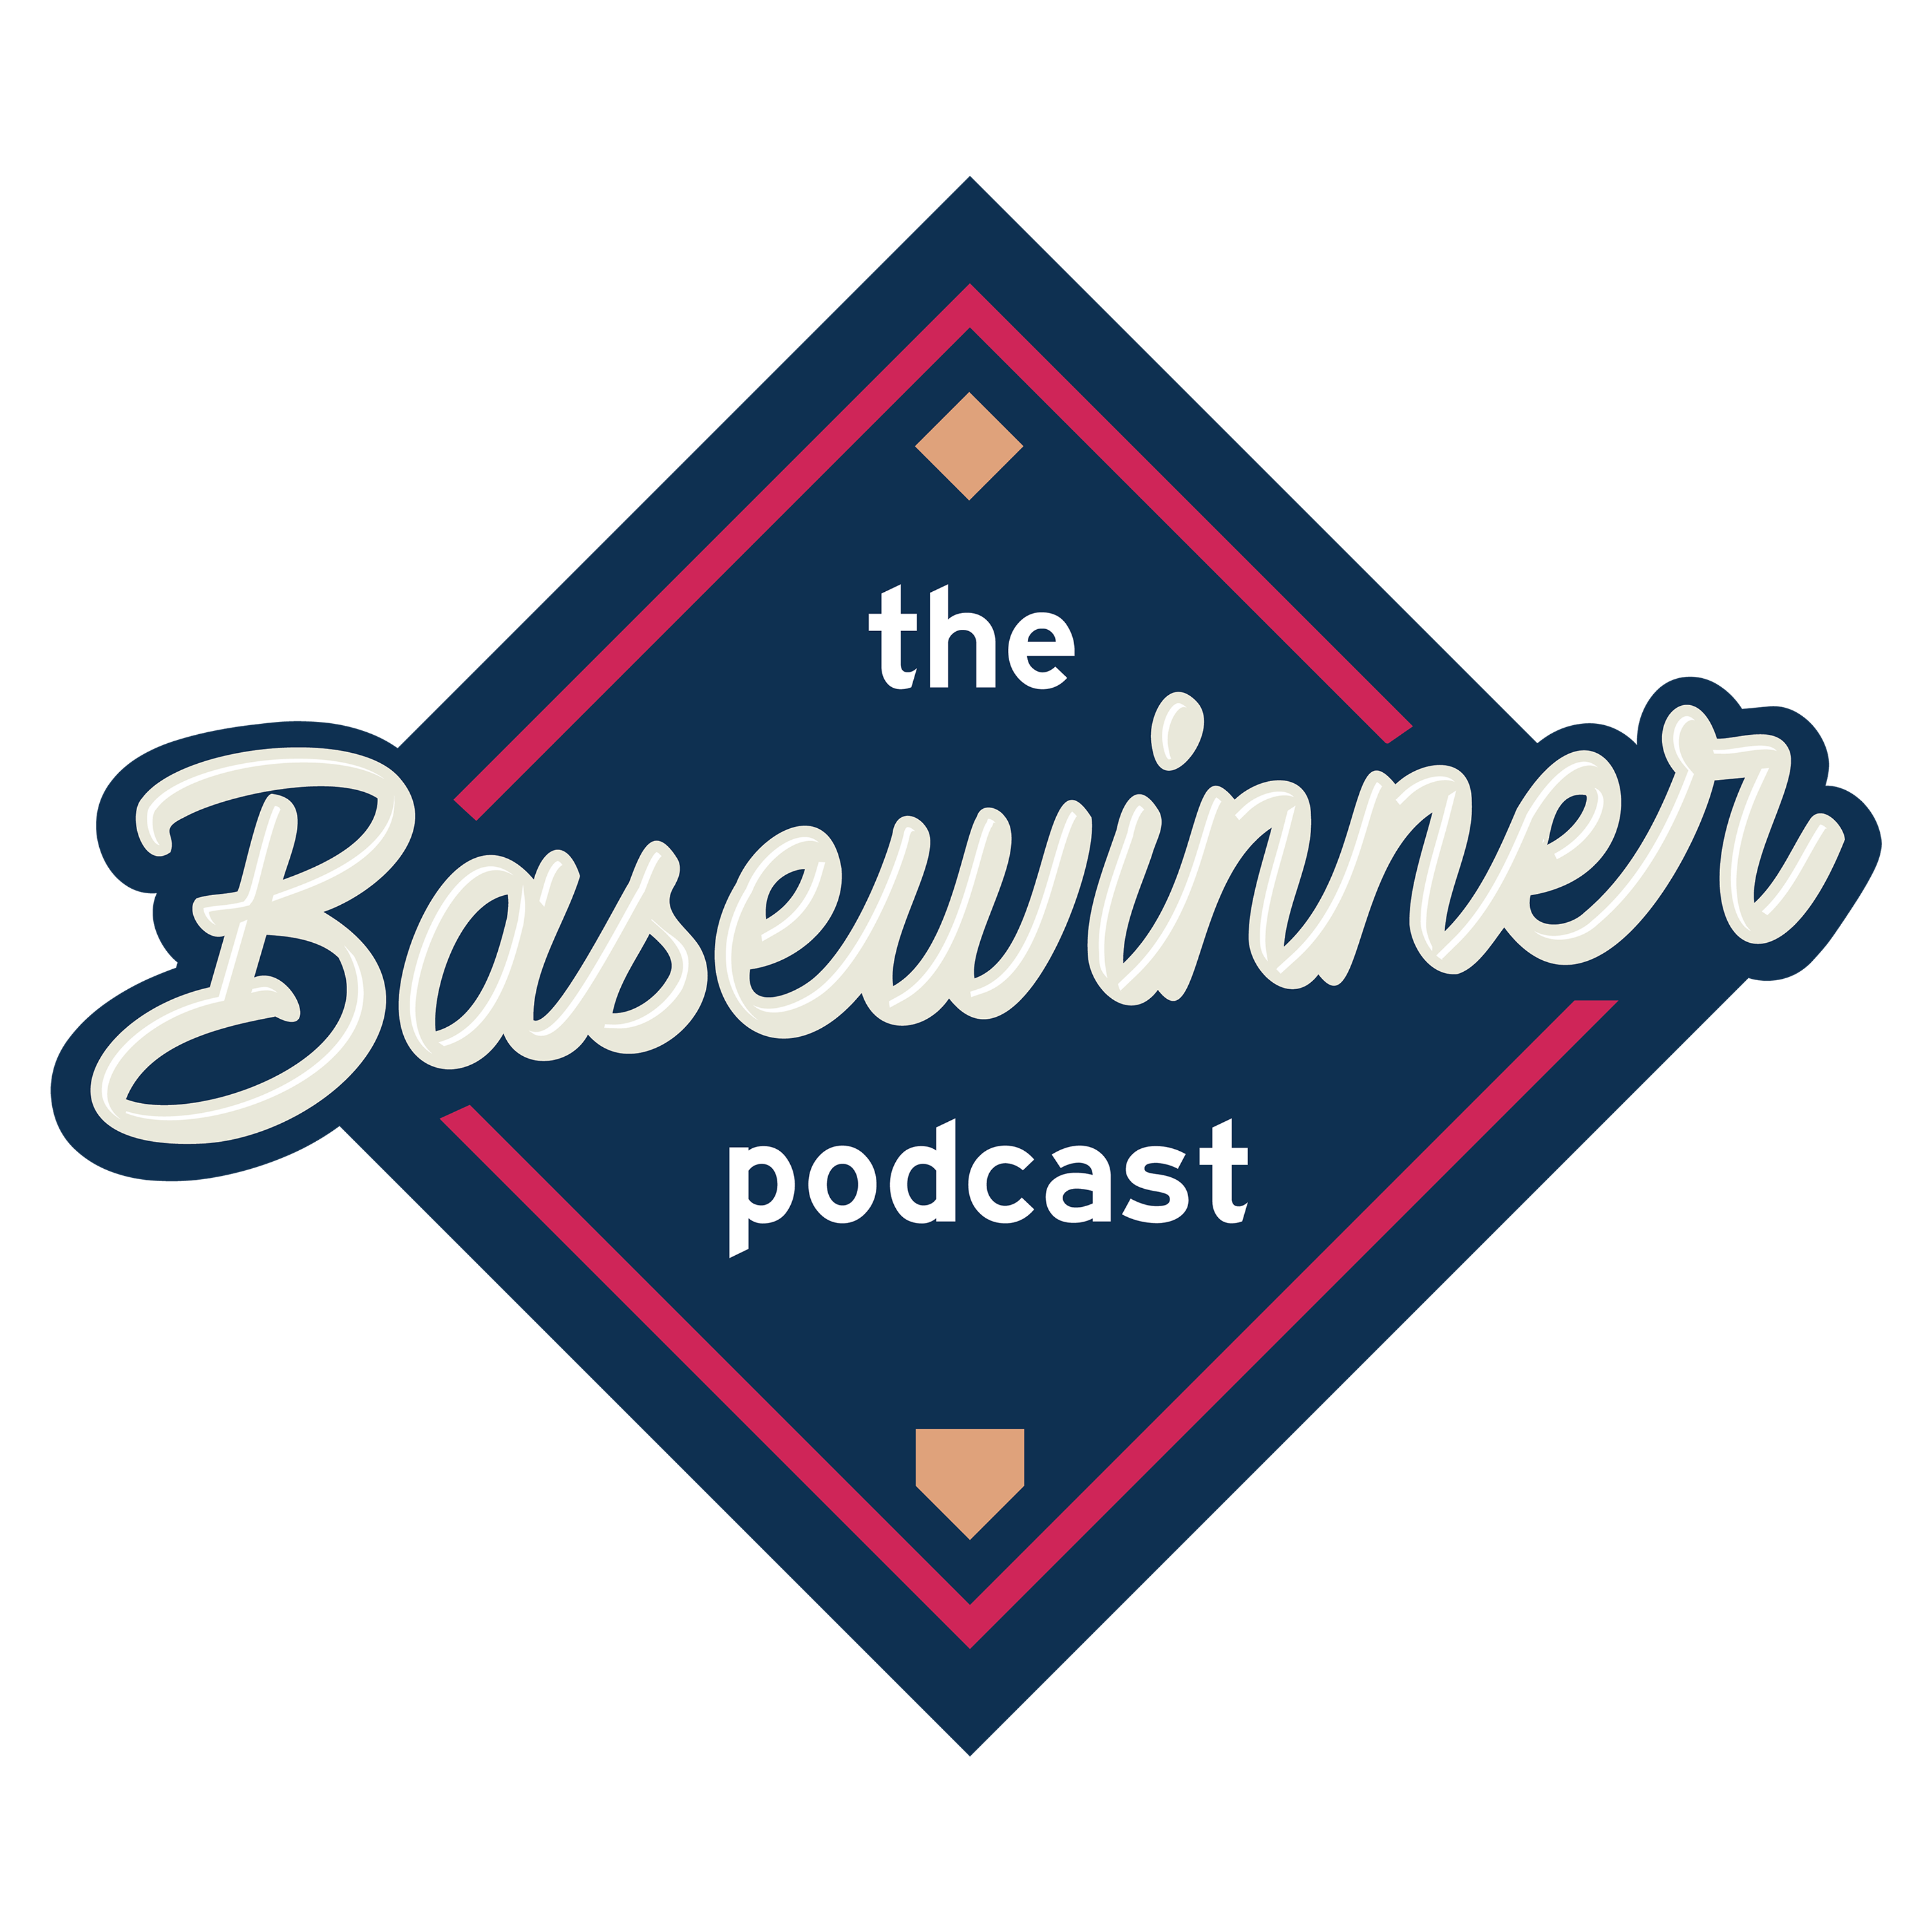 The Basewinner Podcast show art